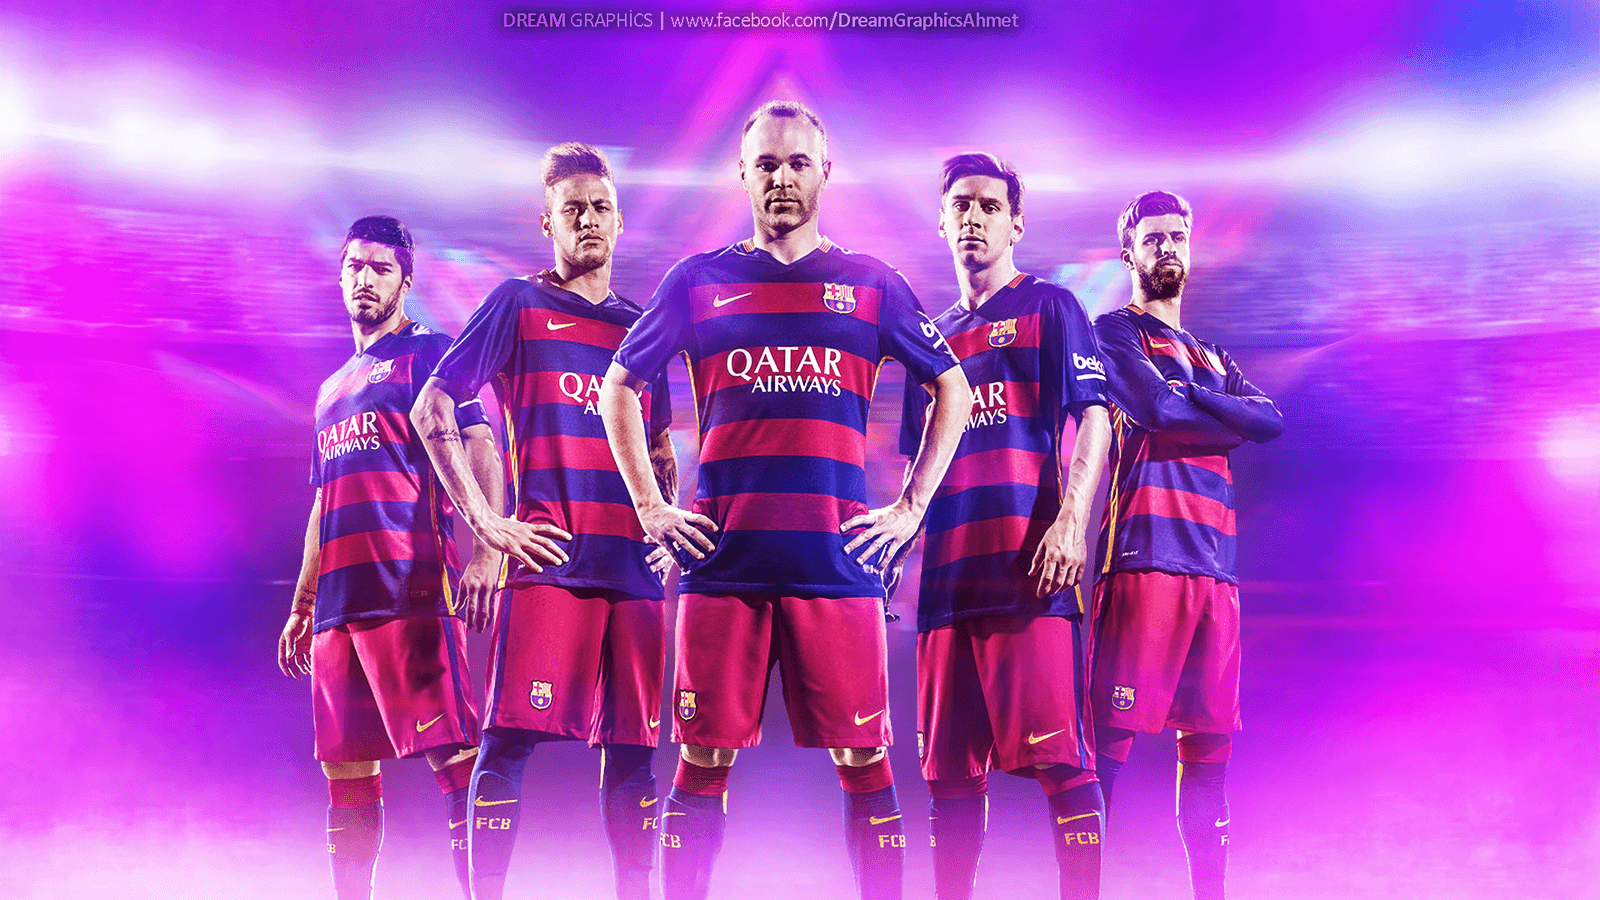 Barcelona 2015 2016 Wallpaper by dreamgraphicss on DeviantArt